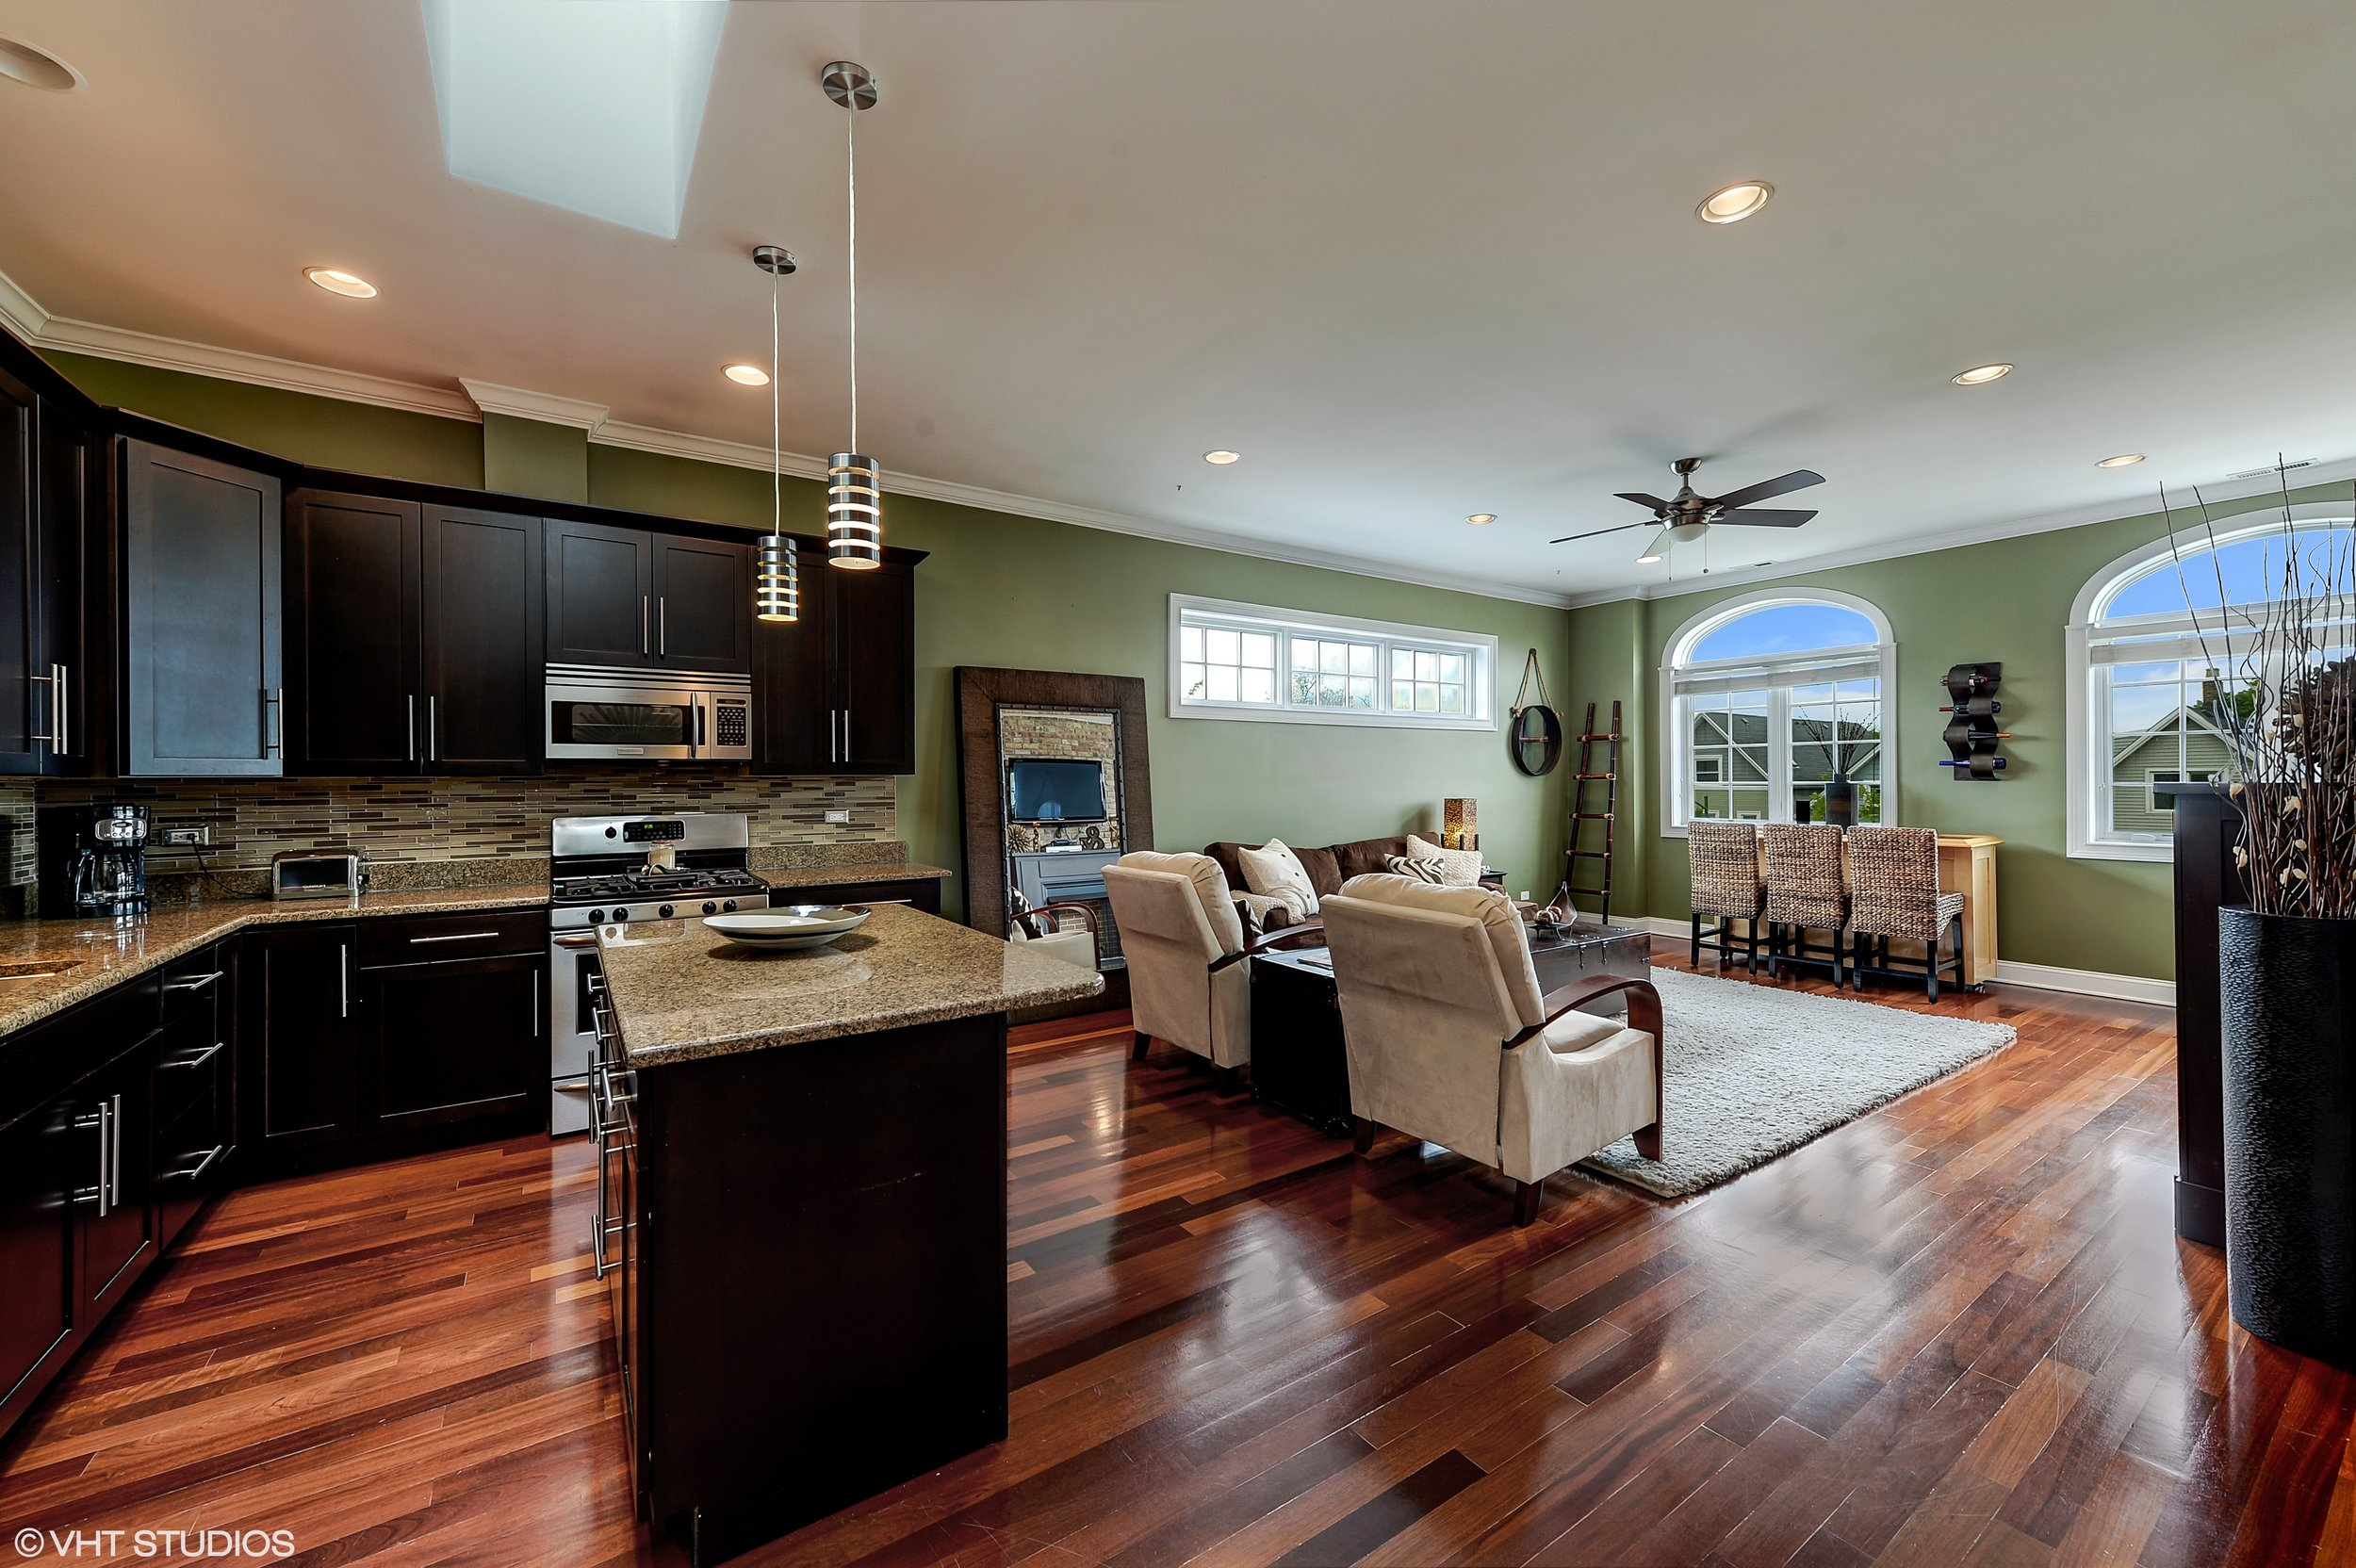 06_2641NorthAshlandAve_3S_91_KitchenLivingRoom_HiRes.jpg